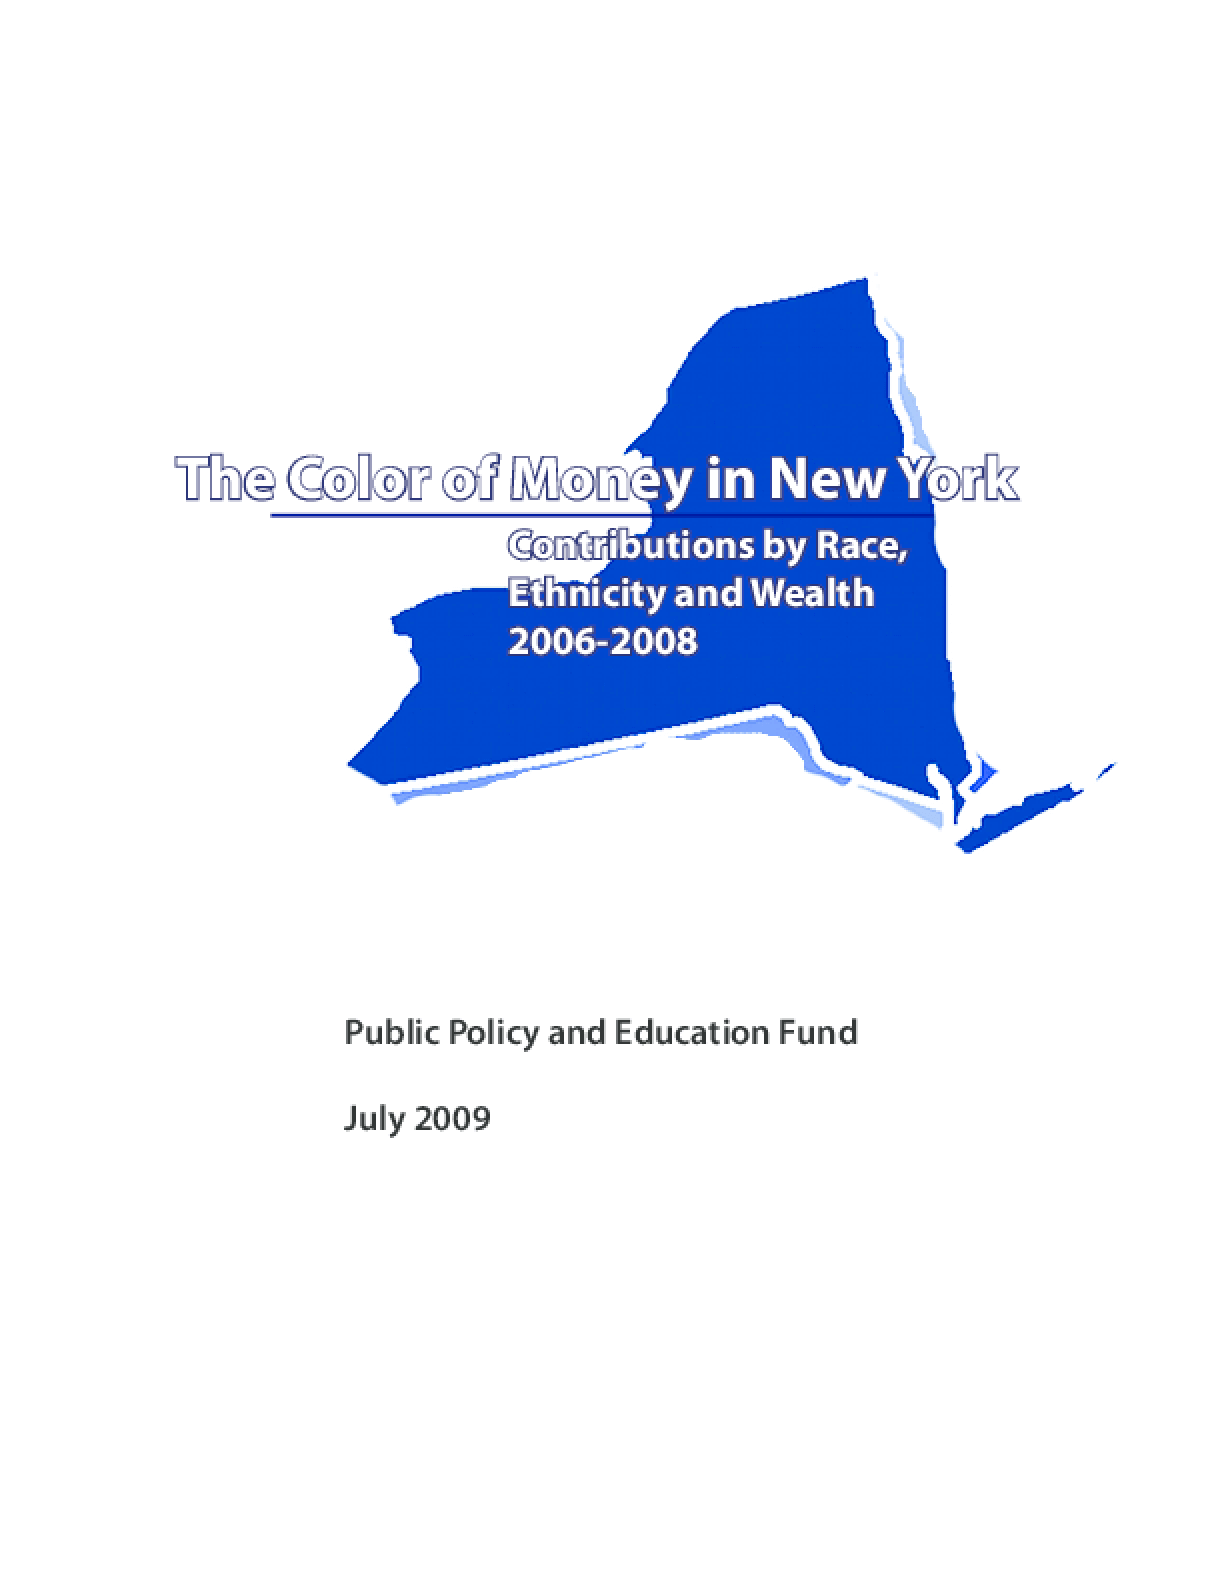 The Color of Money in New York: Contributions by Race, Ethnicity and Wealth 2006-2008